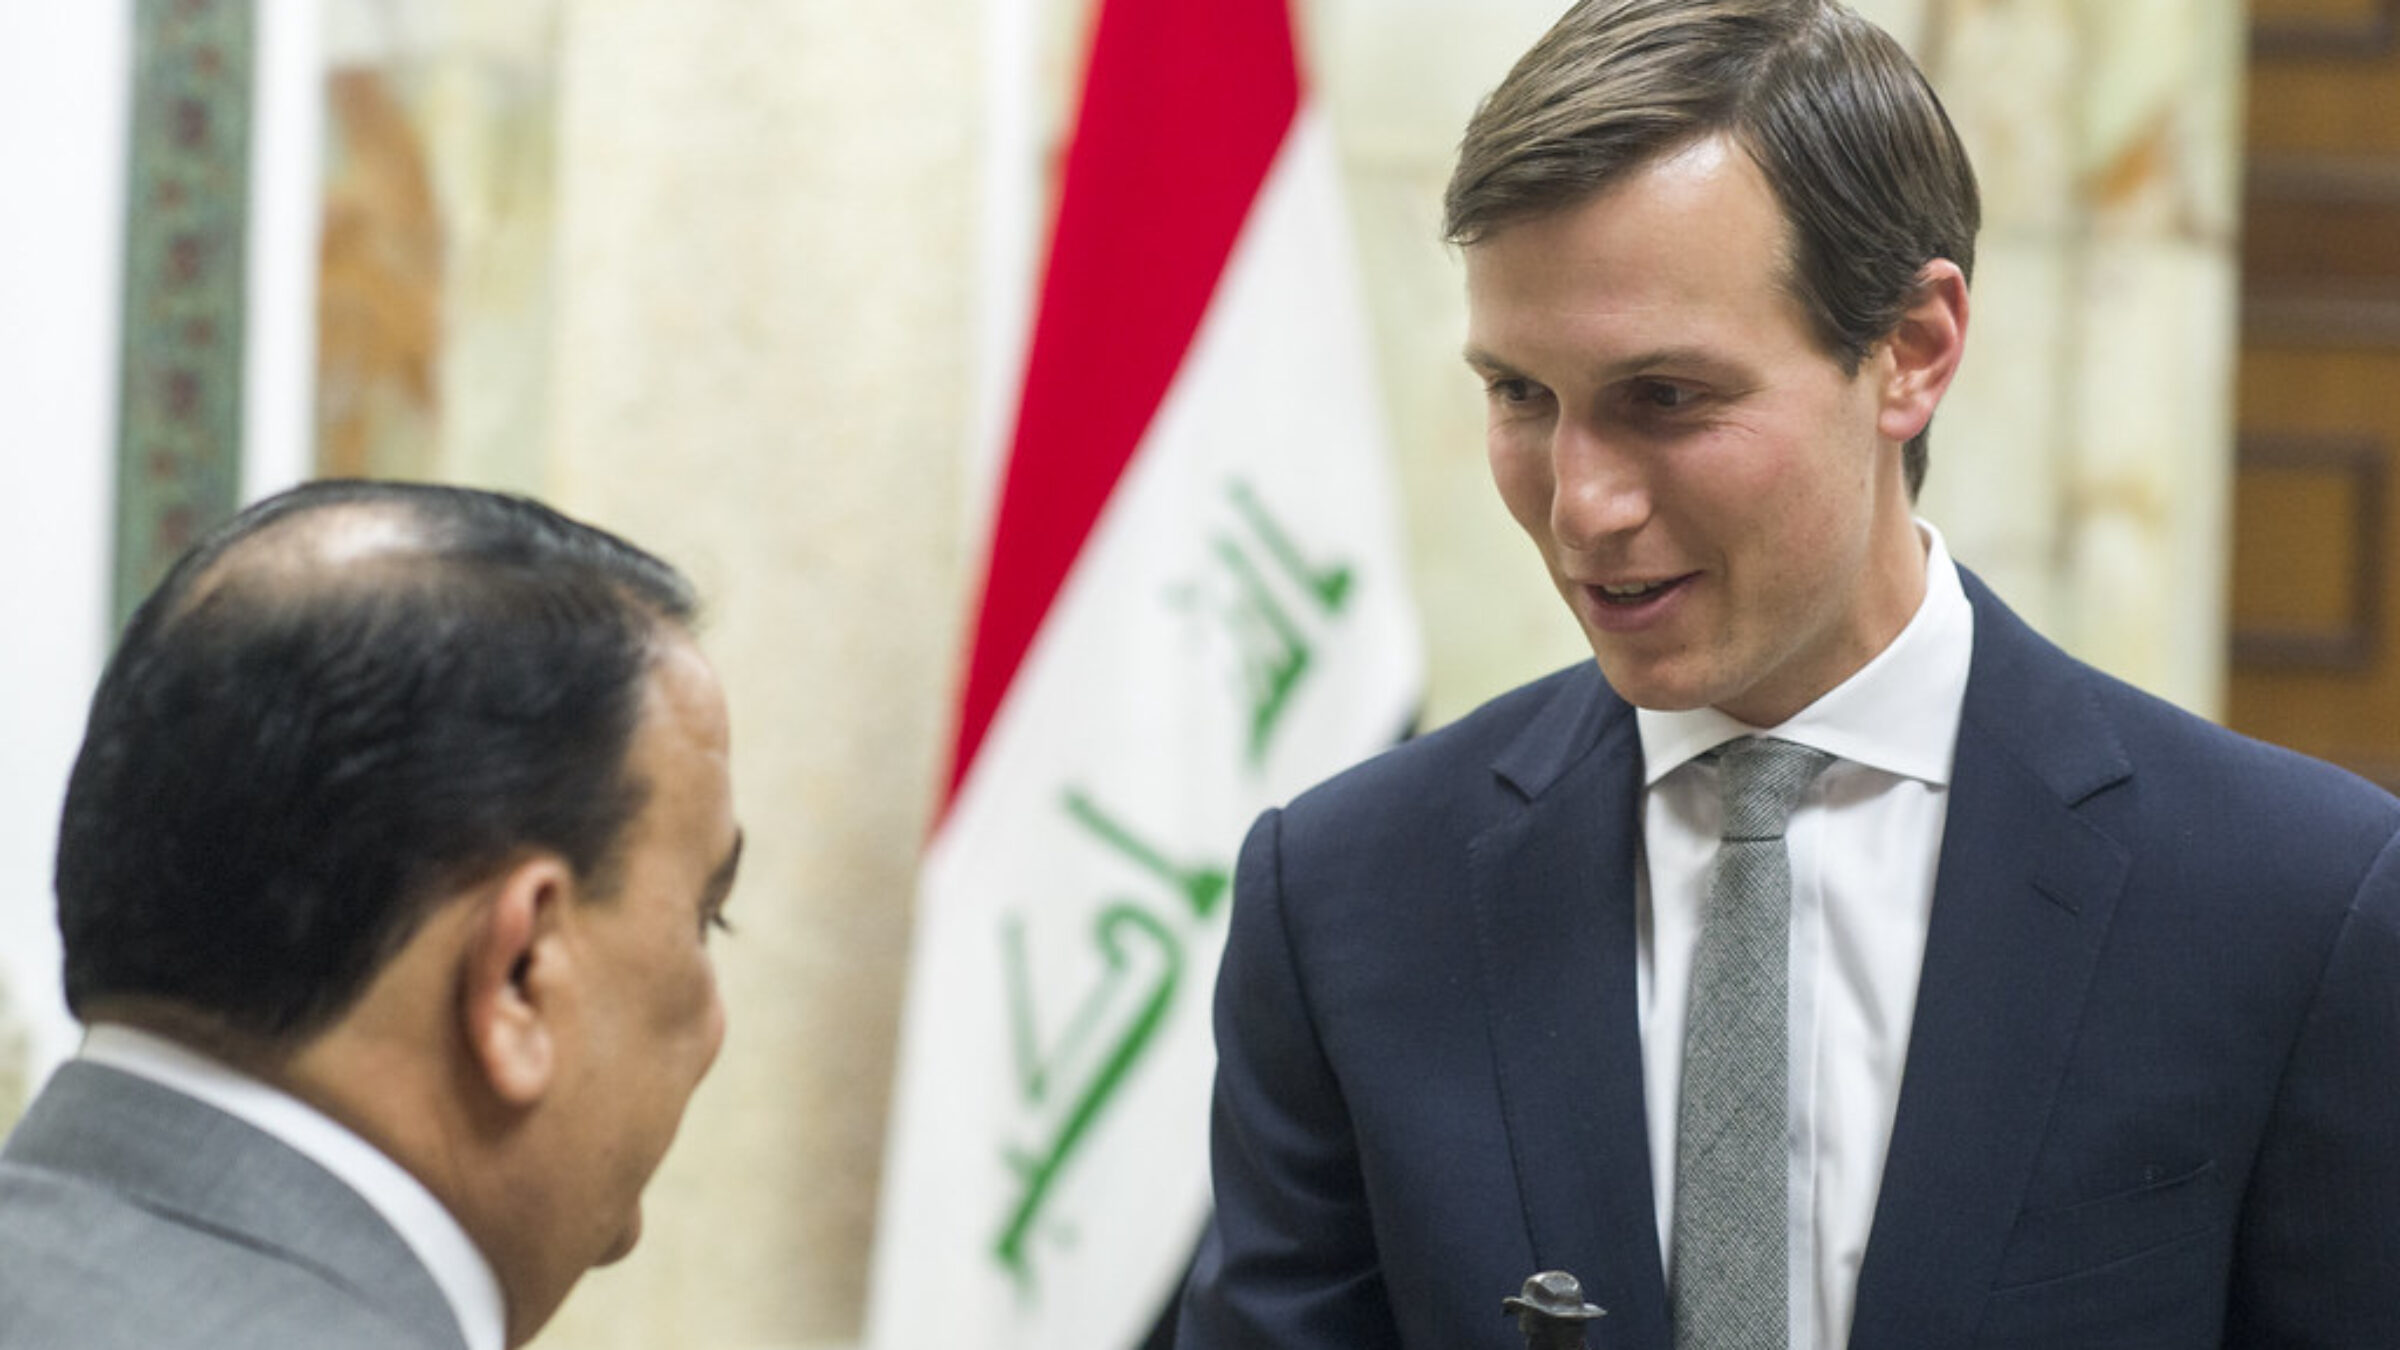 Jared Kushner speaks to someone with the Iraqi flag in the background